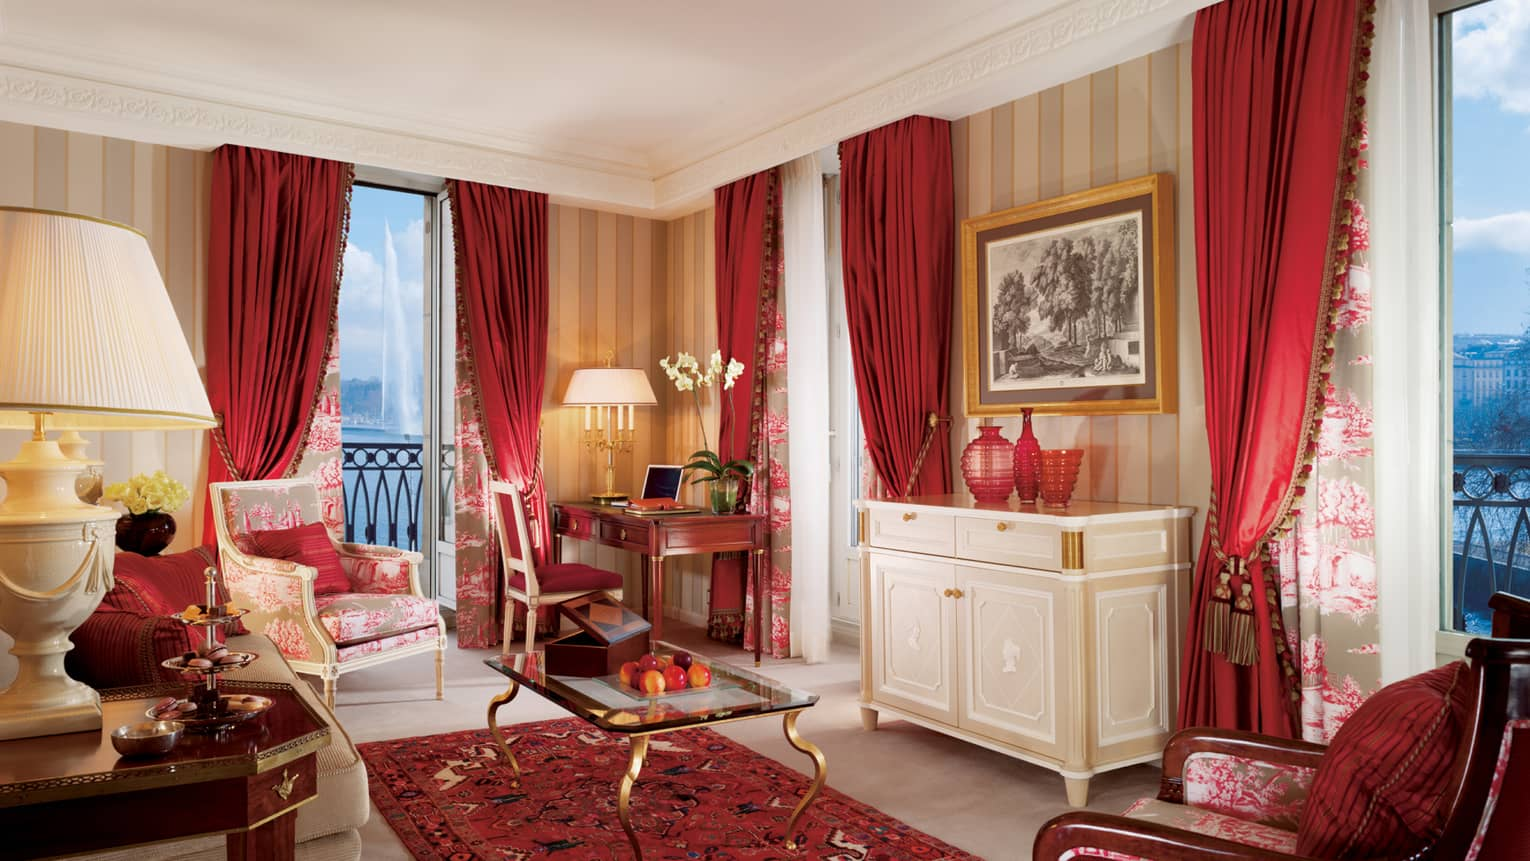 Suite Mont Blanc with dark red curtains, accent chair and rug, glass coffee table, French balcony at dusk